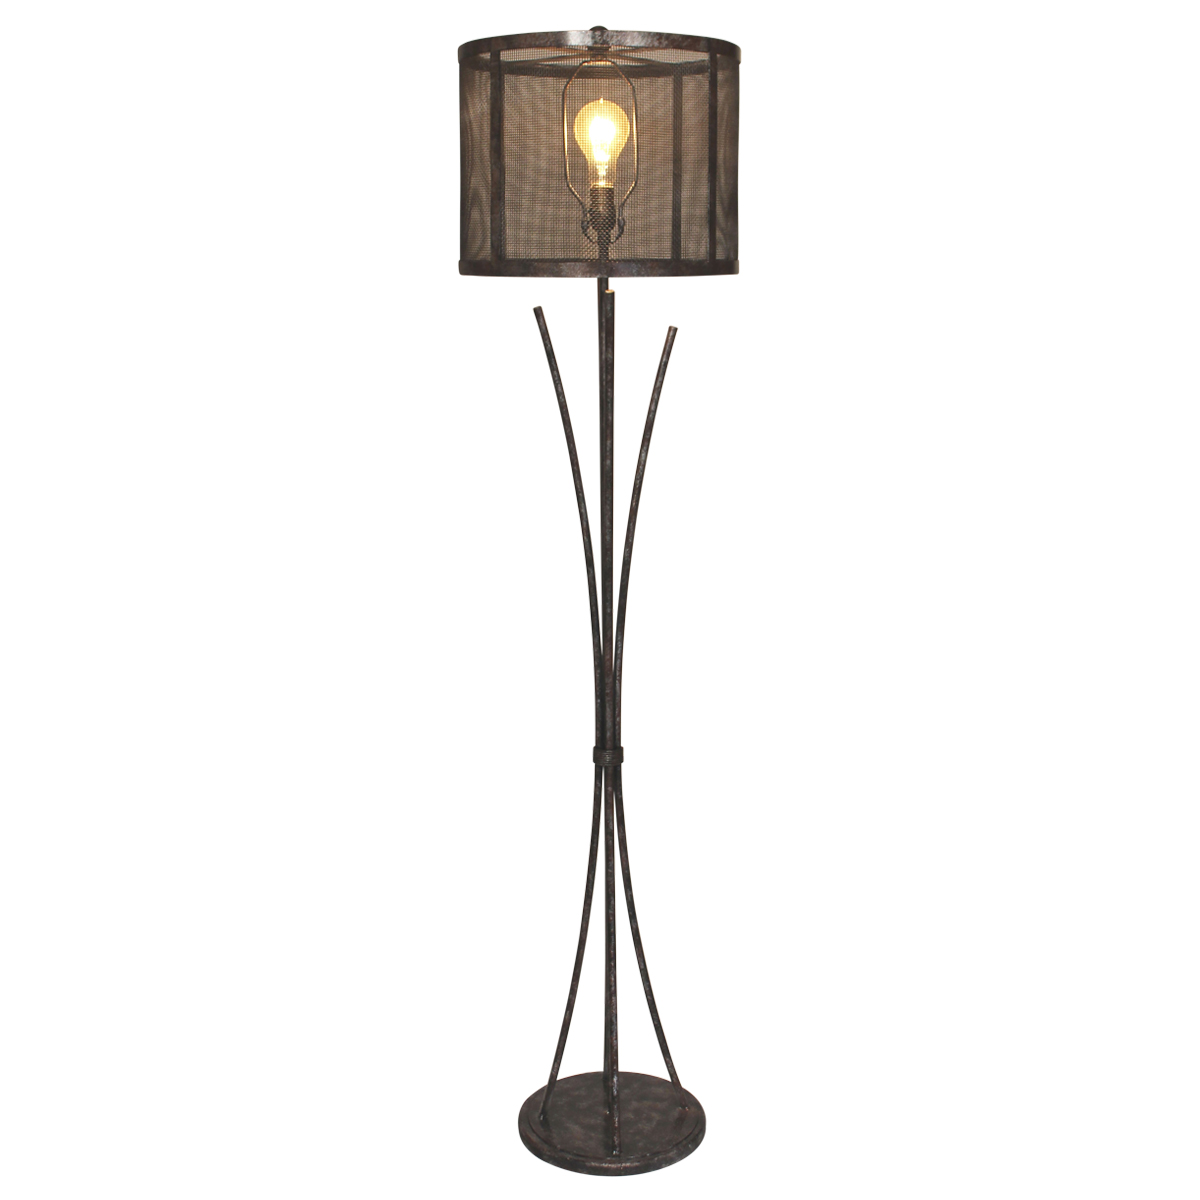 Antiqued Iron Bundle Floor Lamp with Metal Mesh Shade